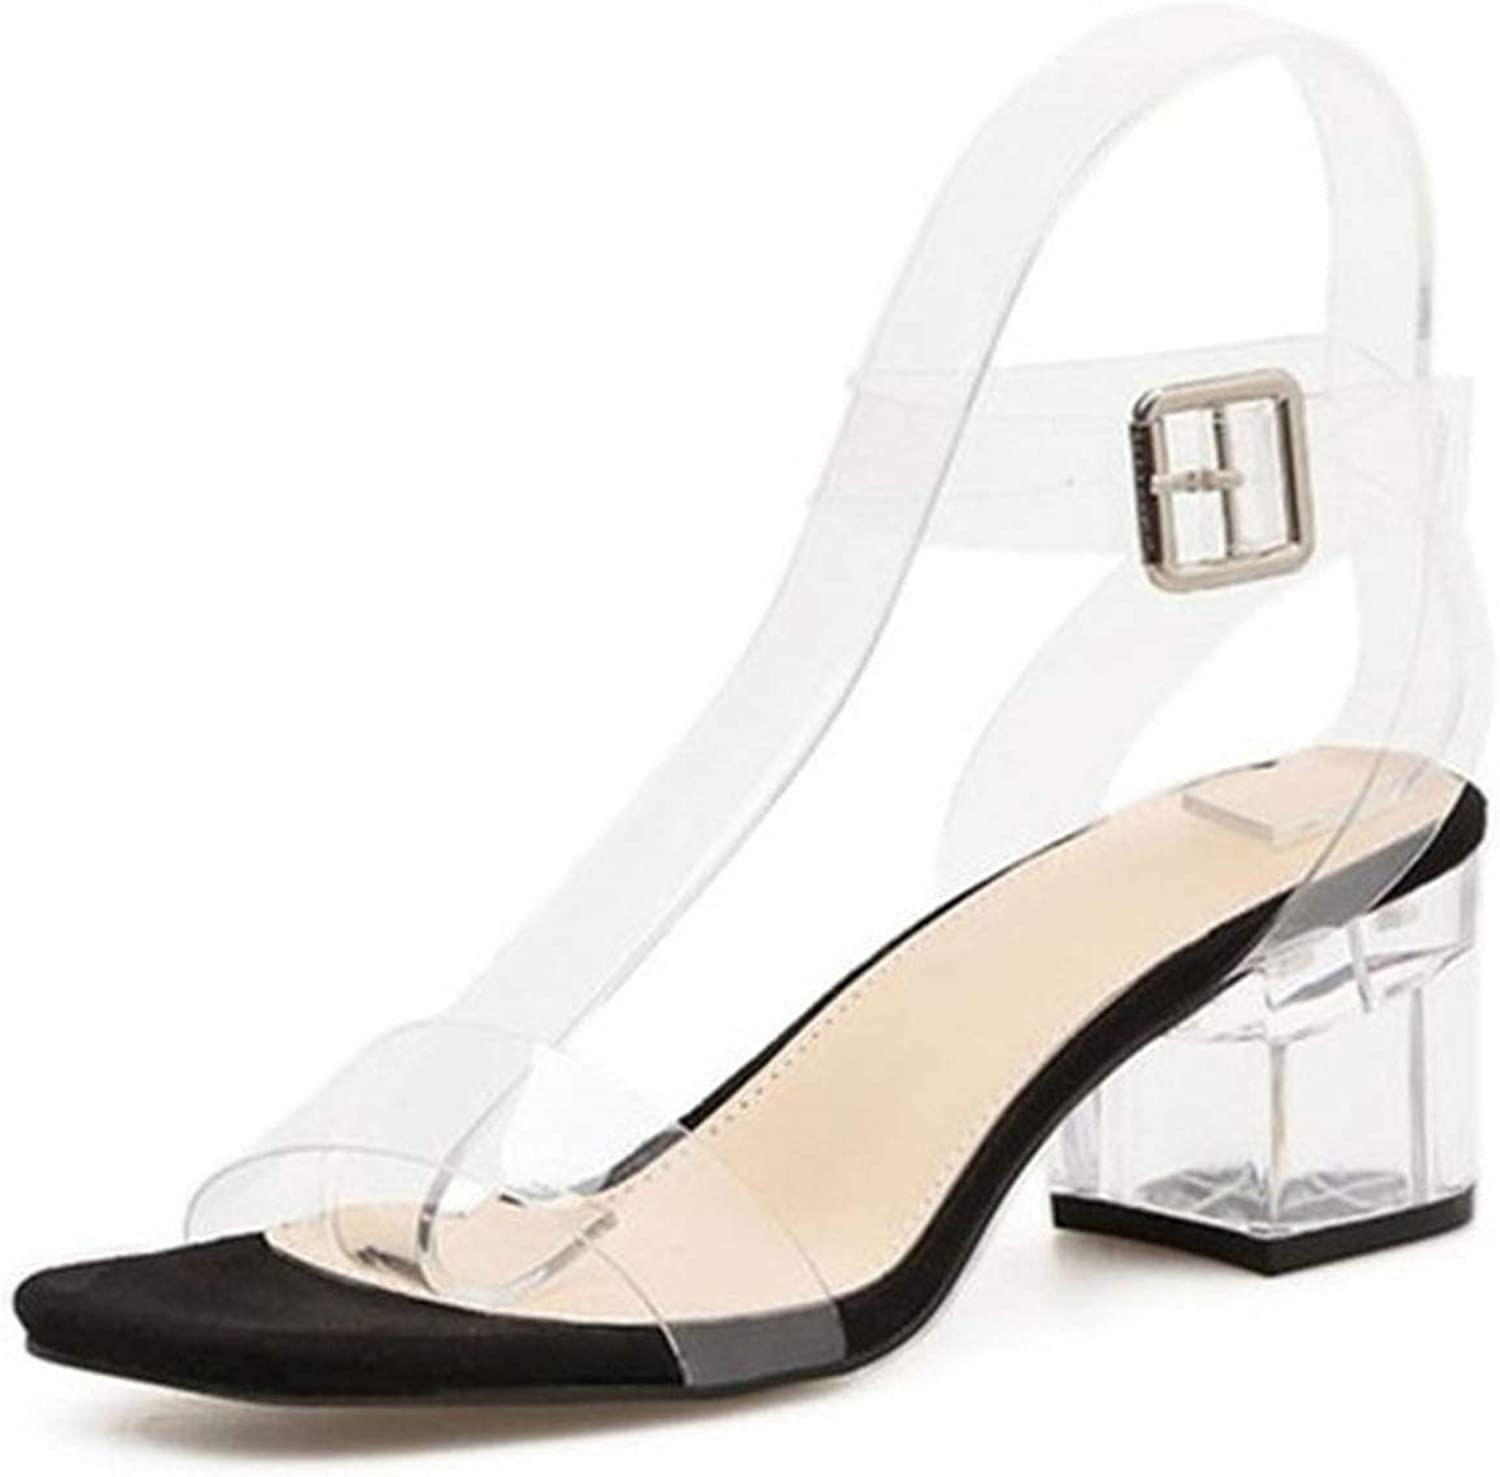 Sunshine-Family PVC Transparent Heels Women's Summer shoes Sexy Transparent Gladiator Sandals Fashion Clear Heels for Women shoes Jelly